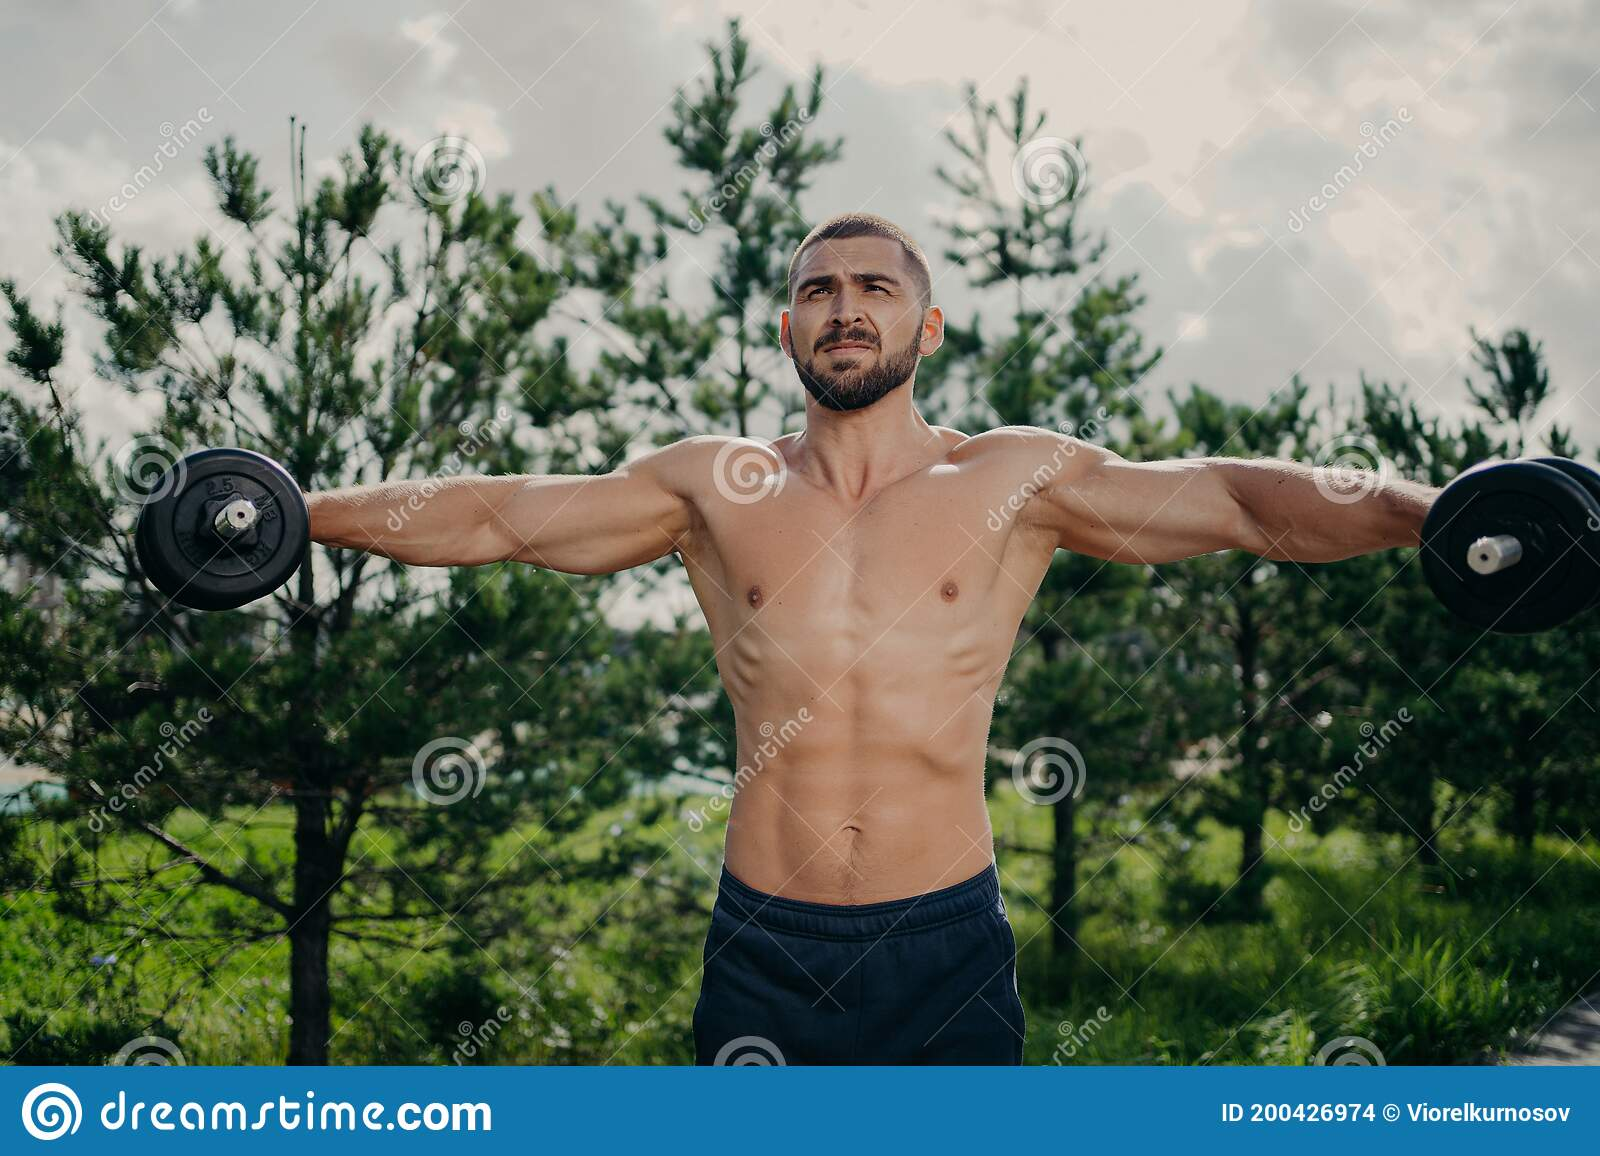 Muscular Strong Athletic Man With Naked Torso Pumping Up